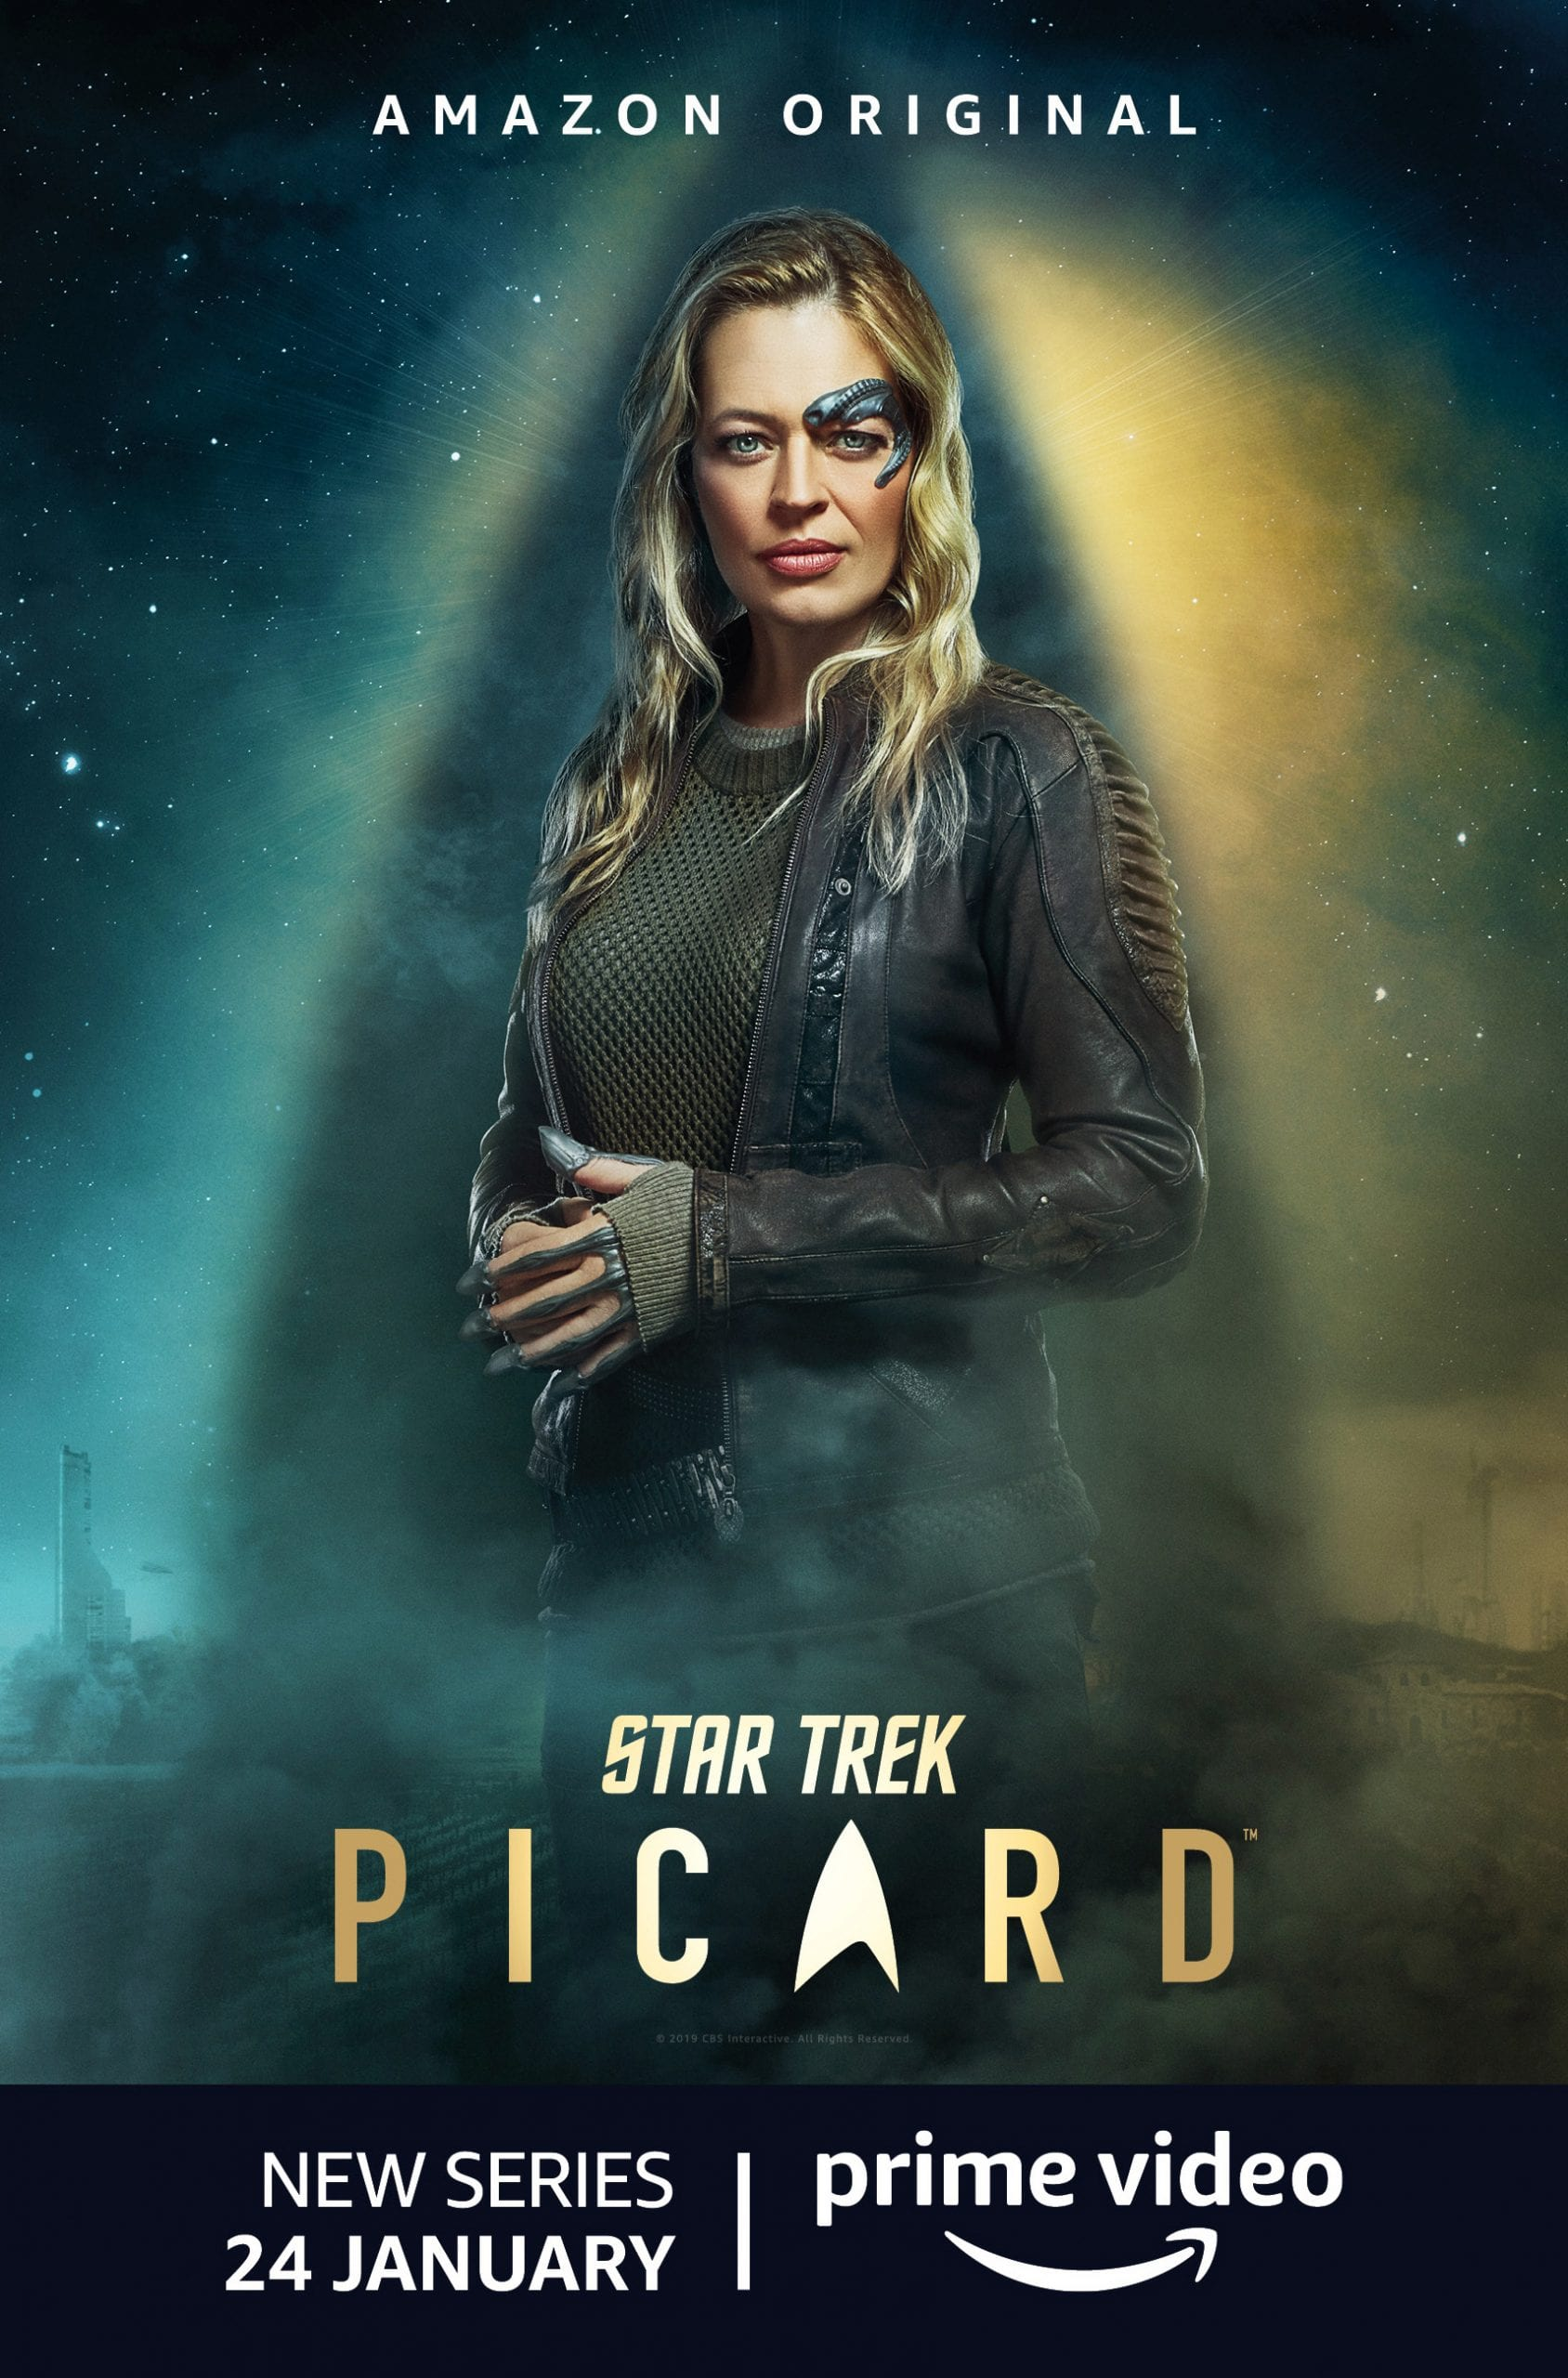 Star Trek Picard Character Posters Jeri Ryan as Seven of Nine